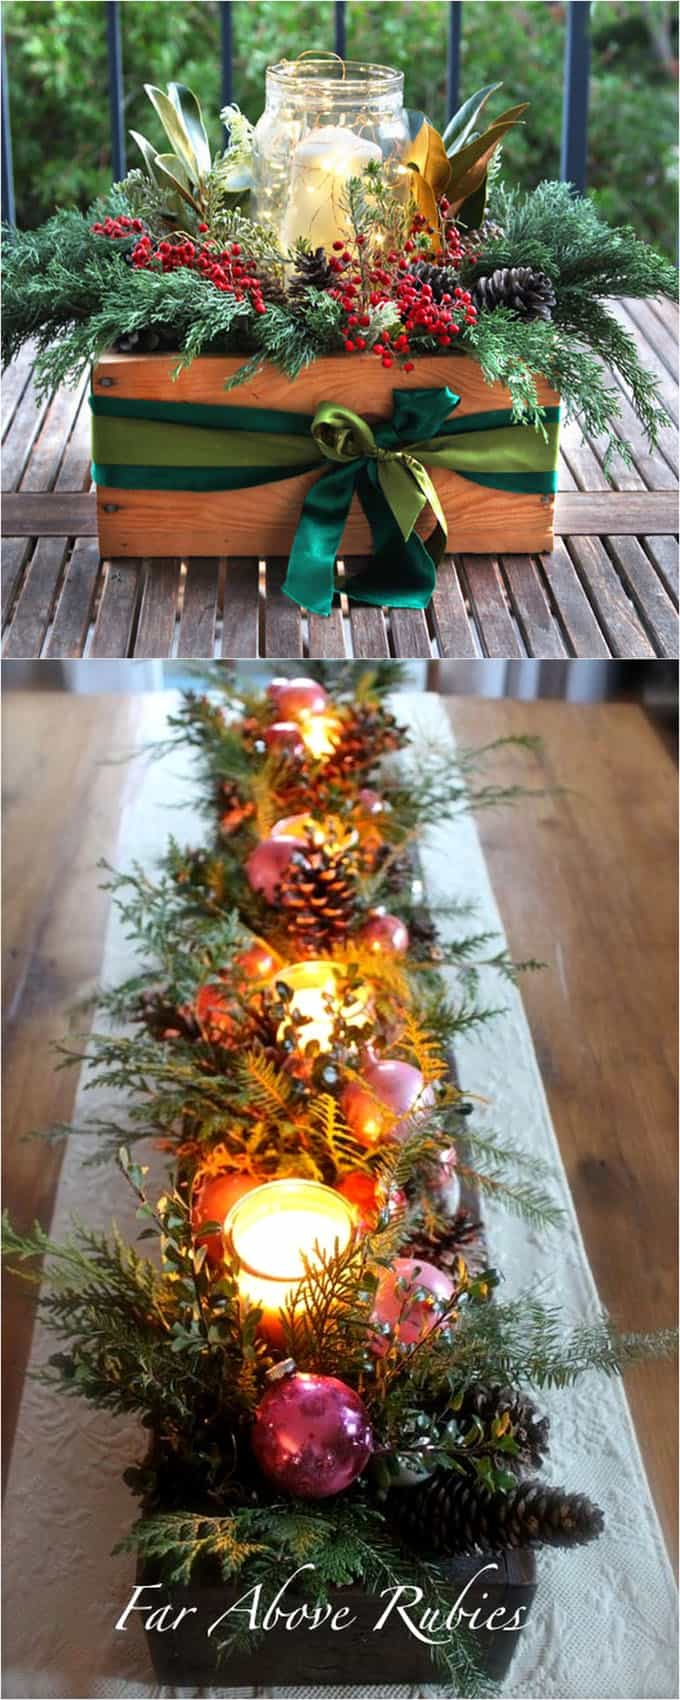 easy DIY Thanksgiving and Christmas table decorations & centerpieces with candles and pine branches